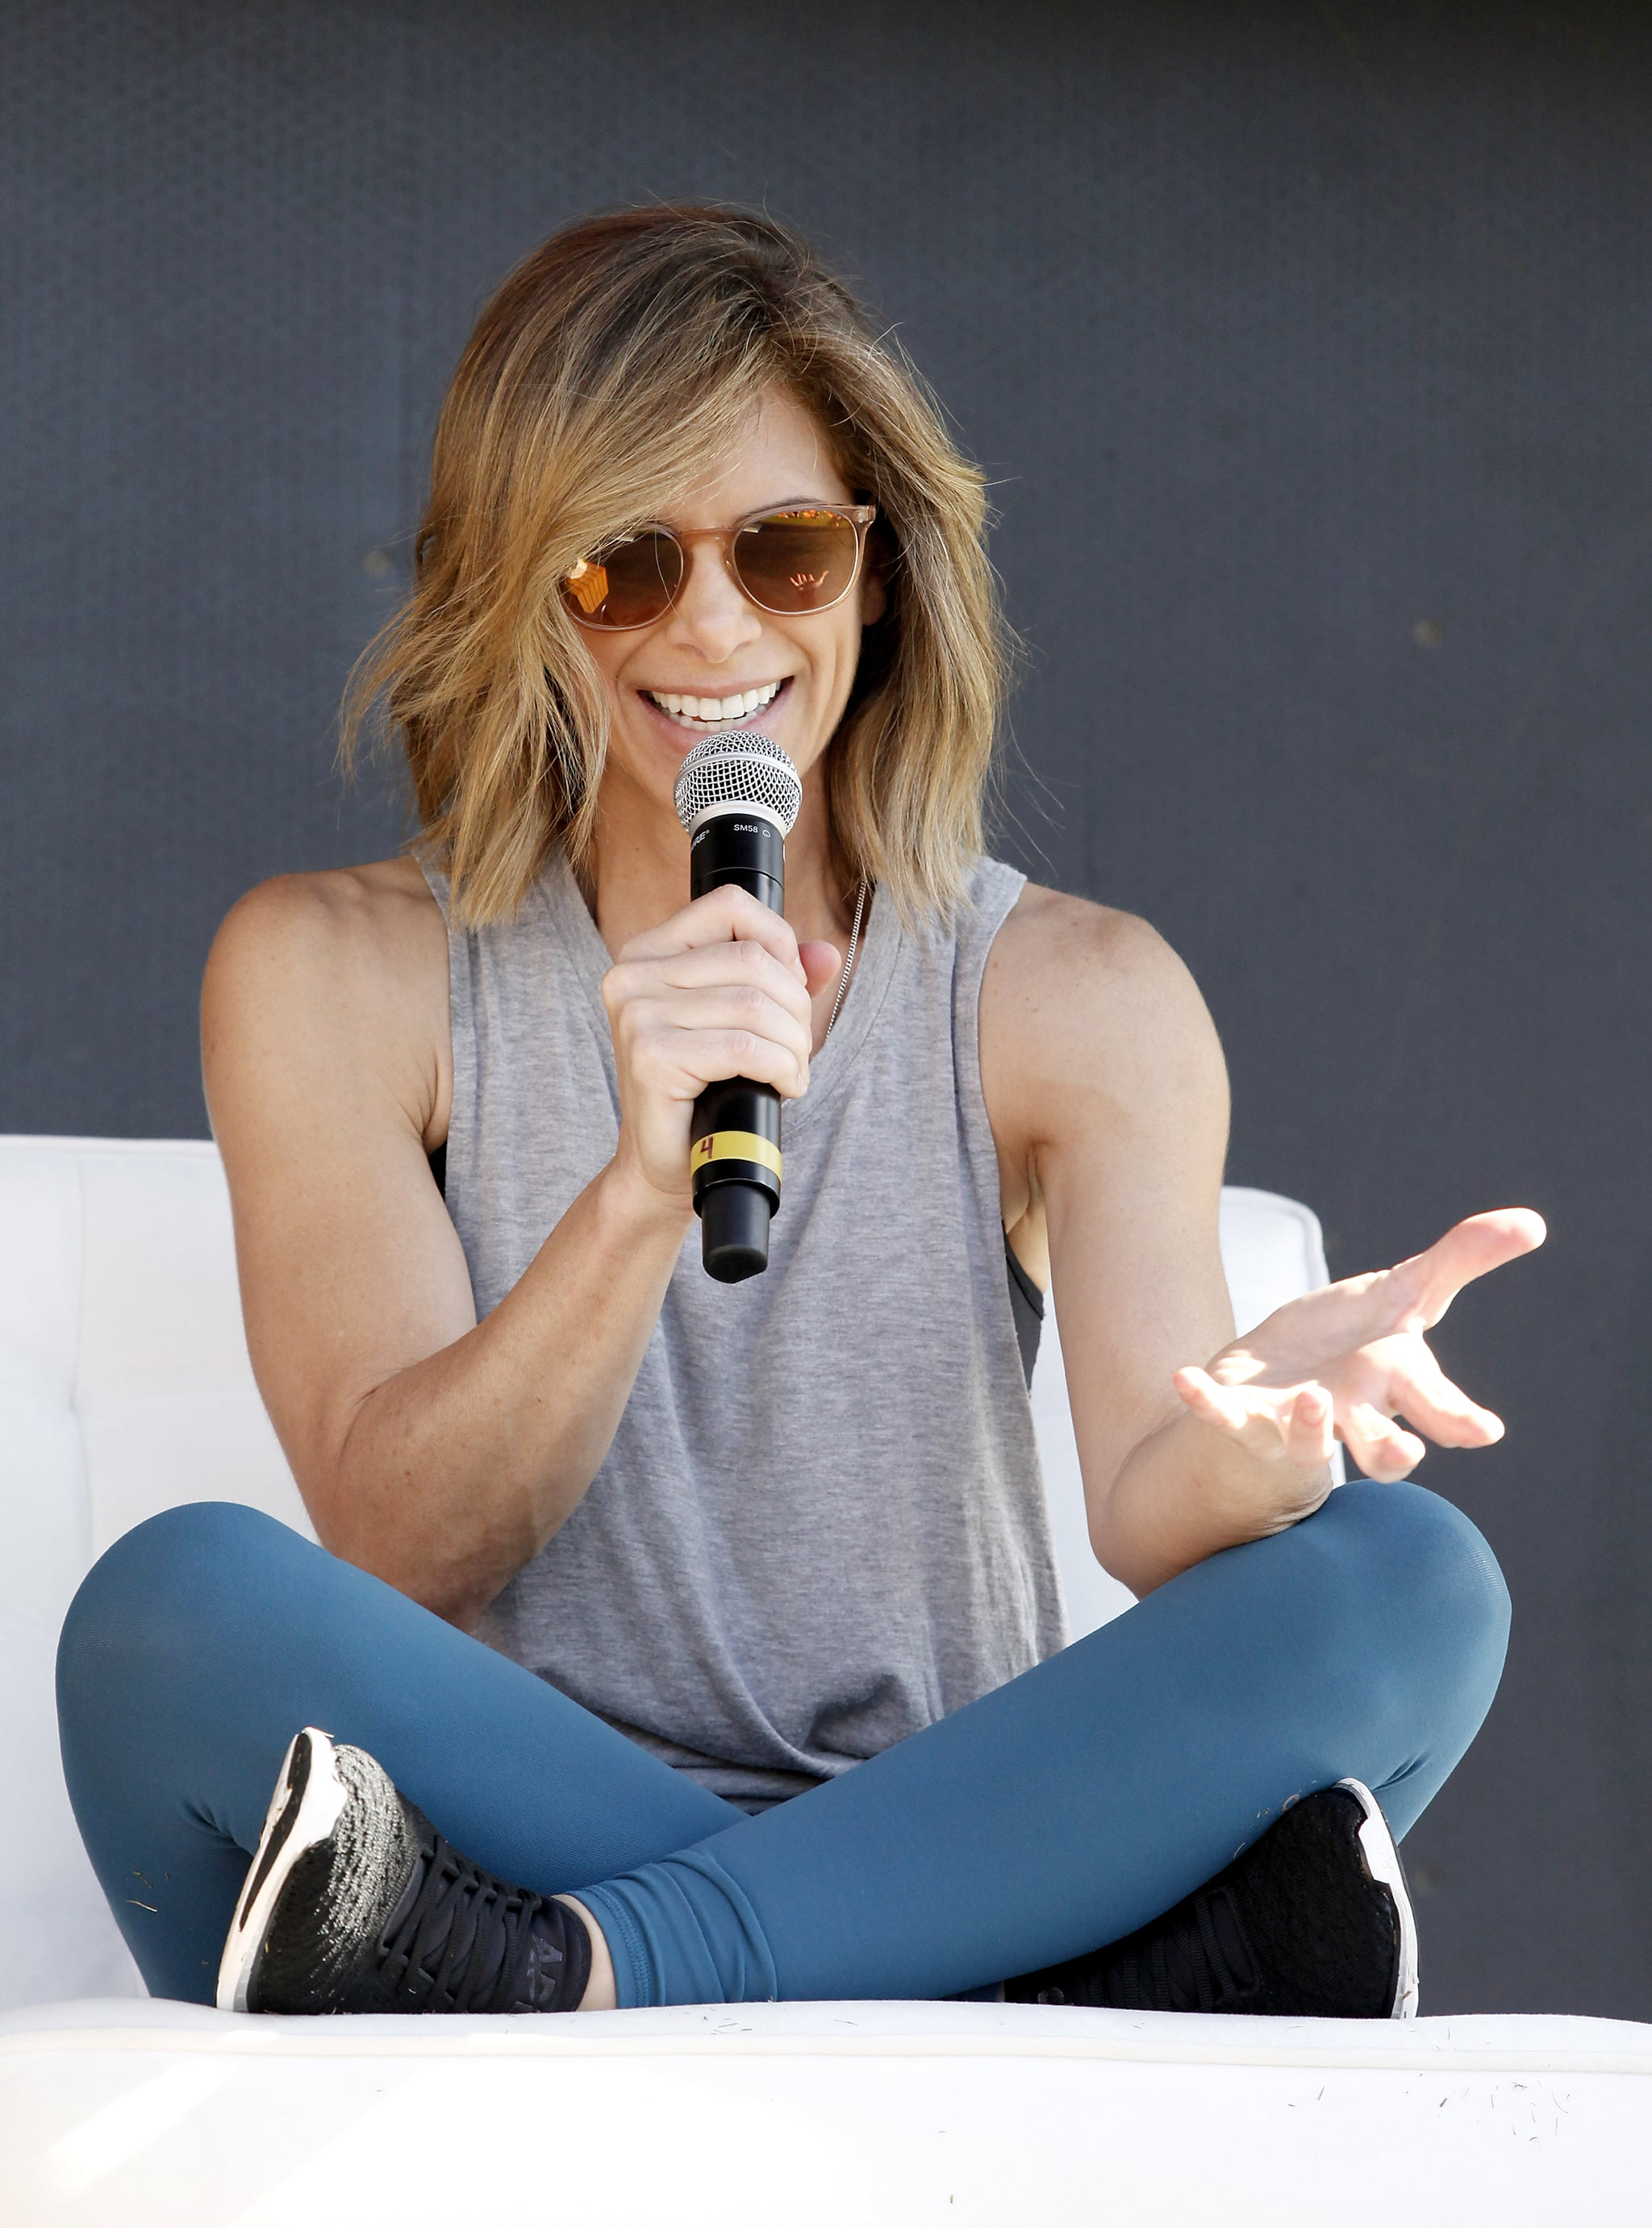 Jillian michaels having sex